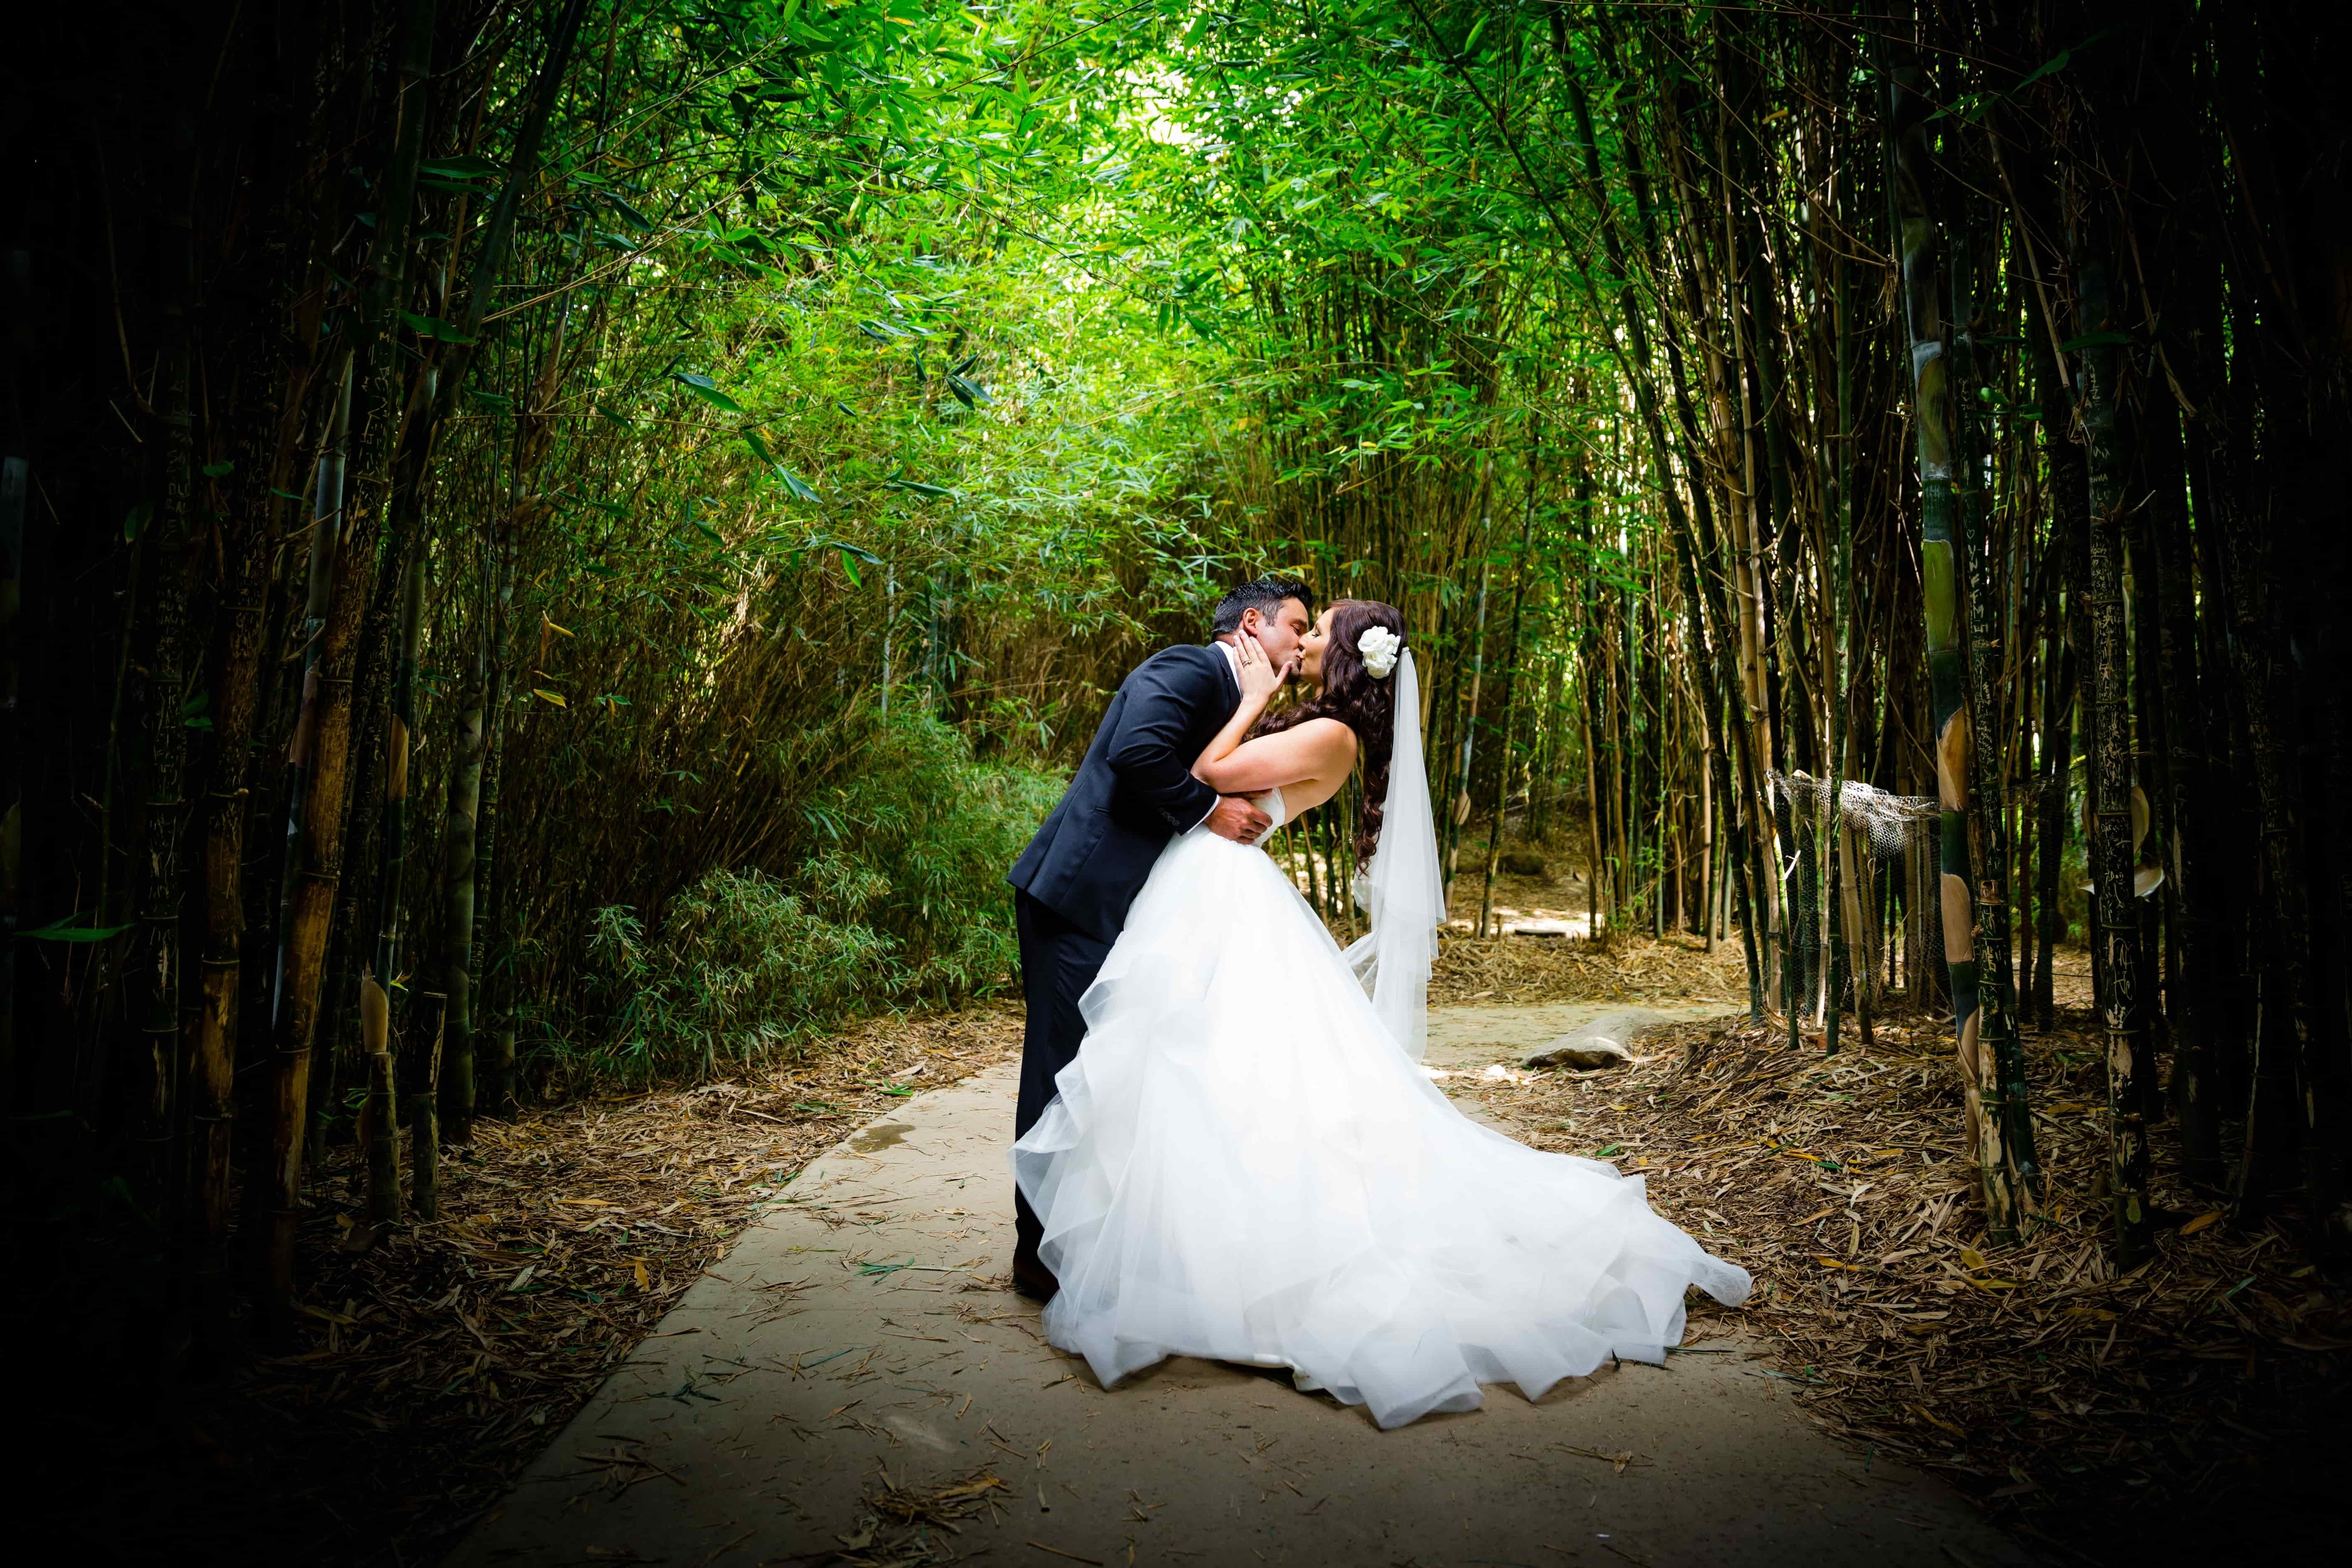 Free wedding showcase at melbourne zoo melbourne this is a special opportunity to experience a beautiful wedding ceremony at melbourne zoo and also discover its unique reception venues junglespirit Images